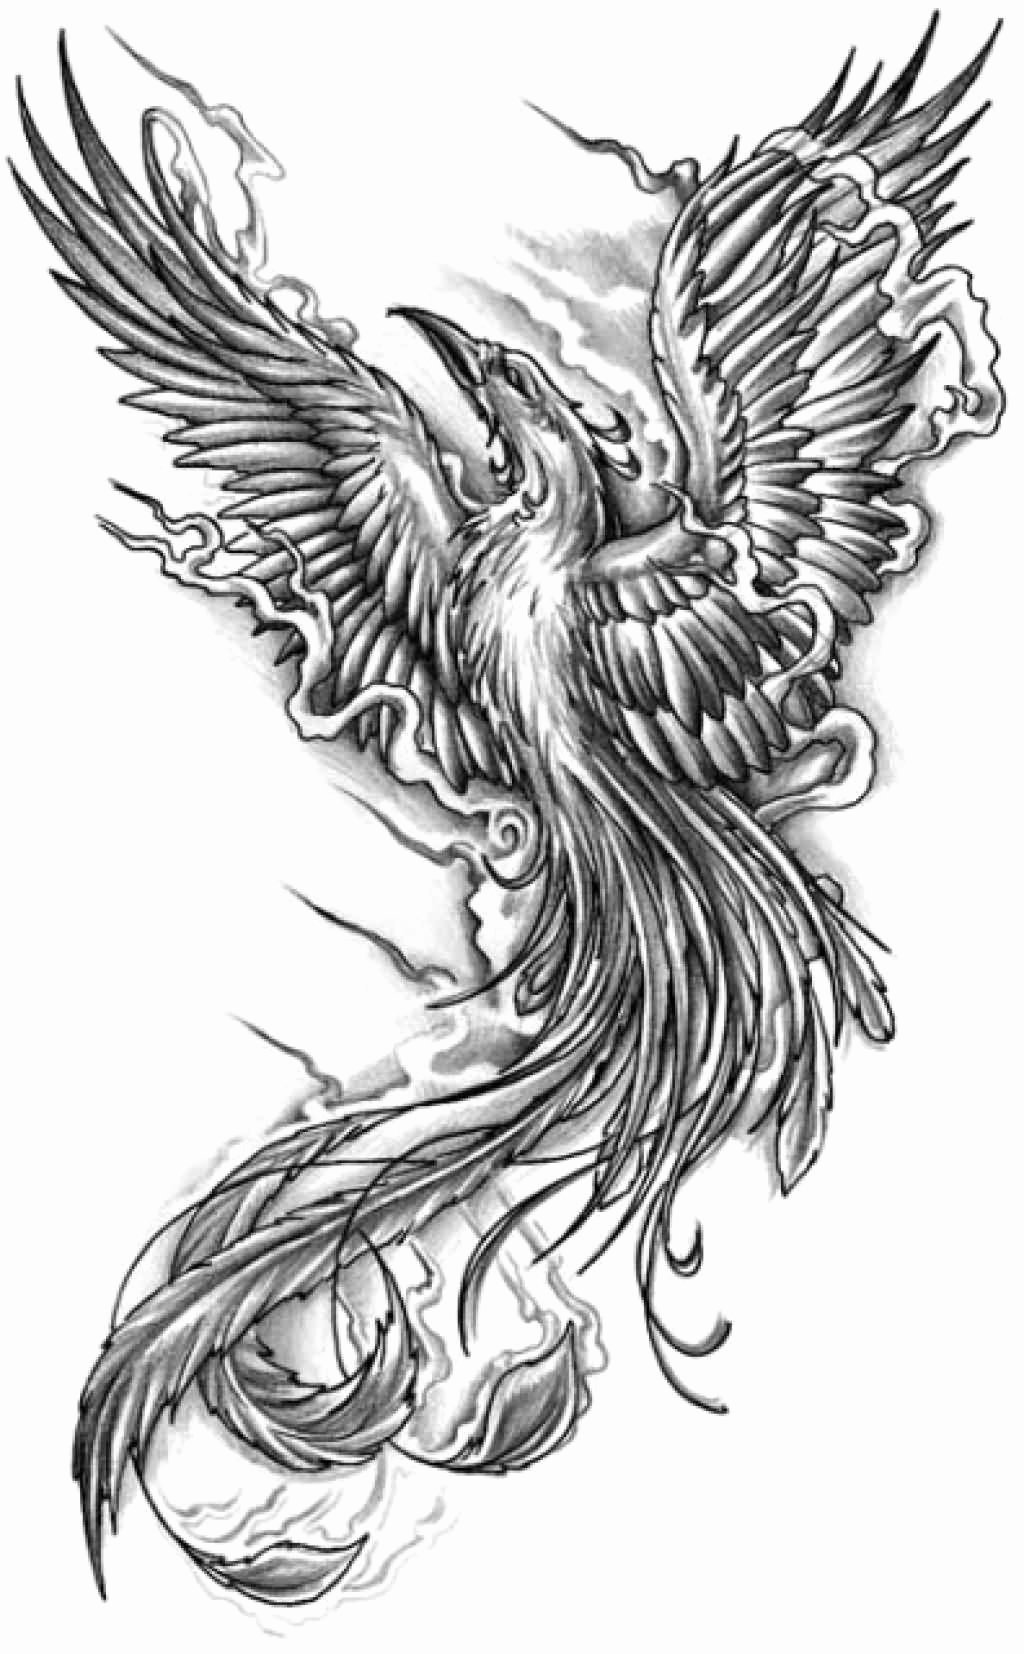 Black and White Phoenix New Black and Grey Flying Phoenix Tattoo Design